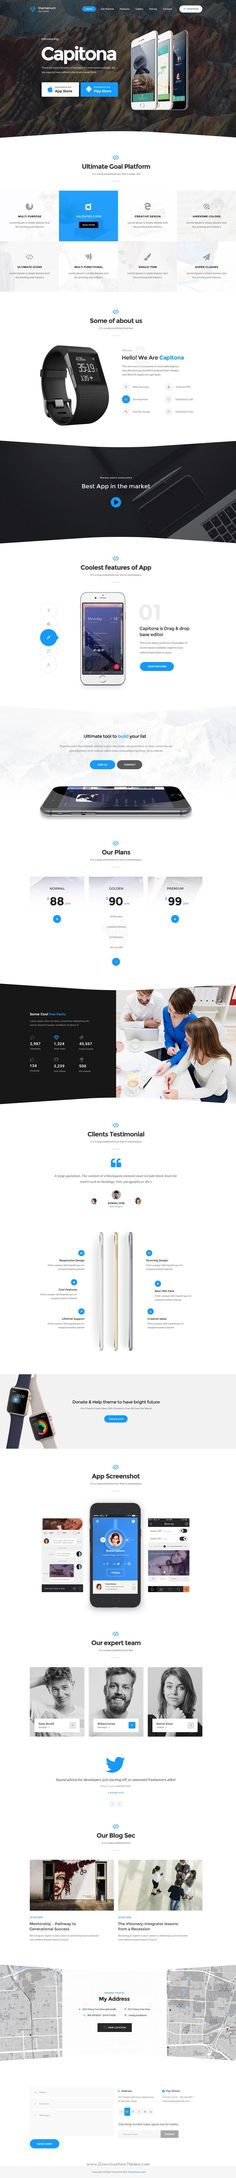 Rent It  Car Rental Management Psd Theme  Web  Design